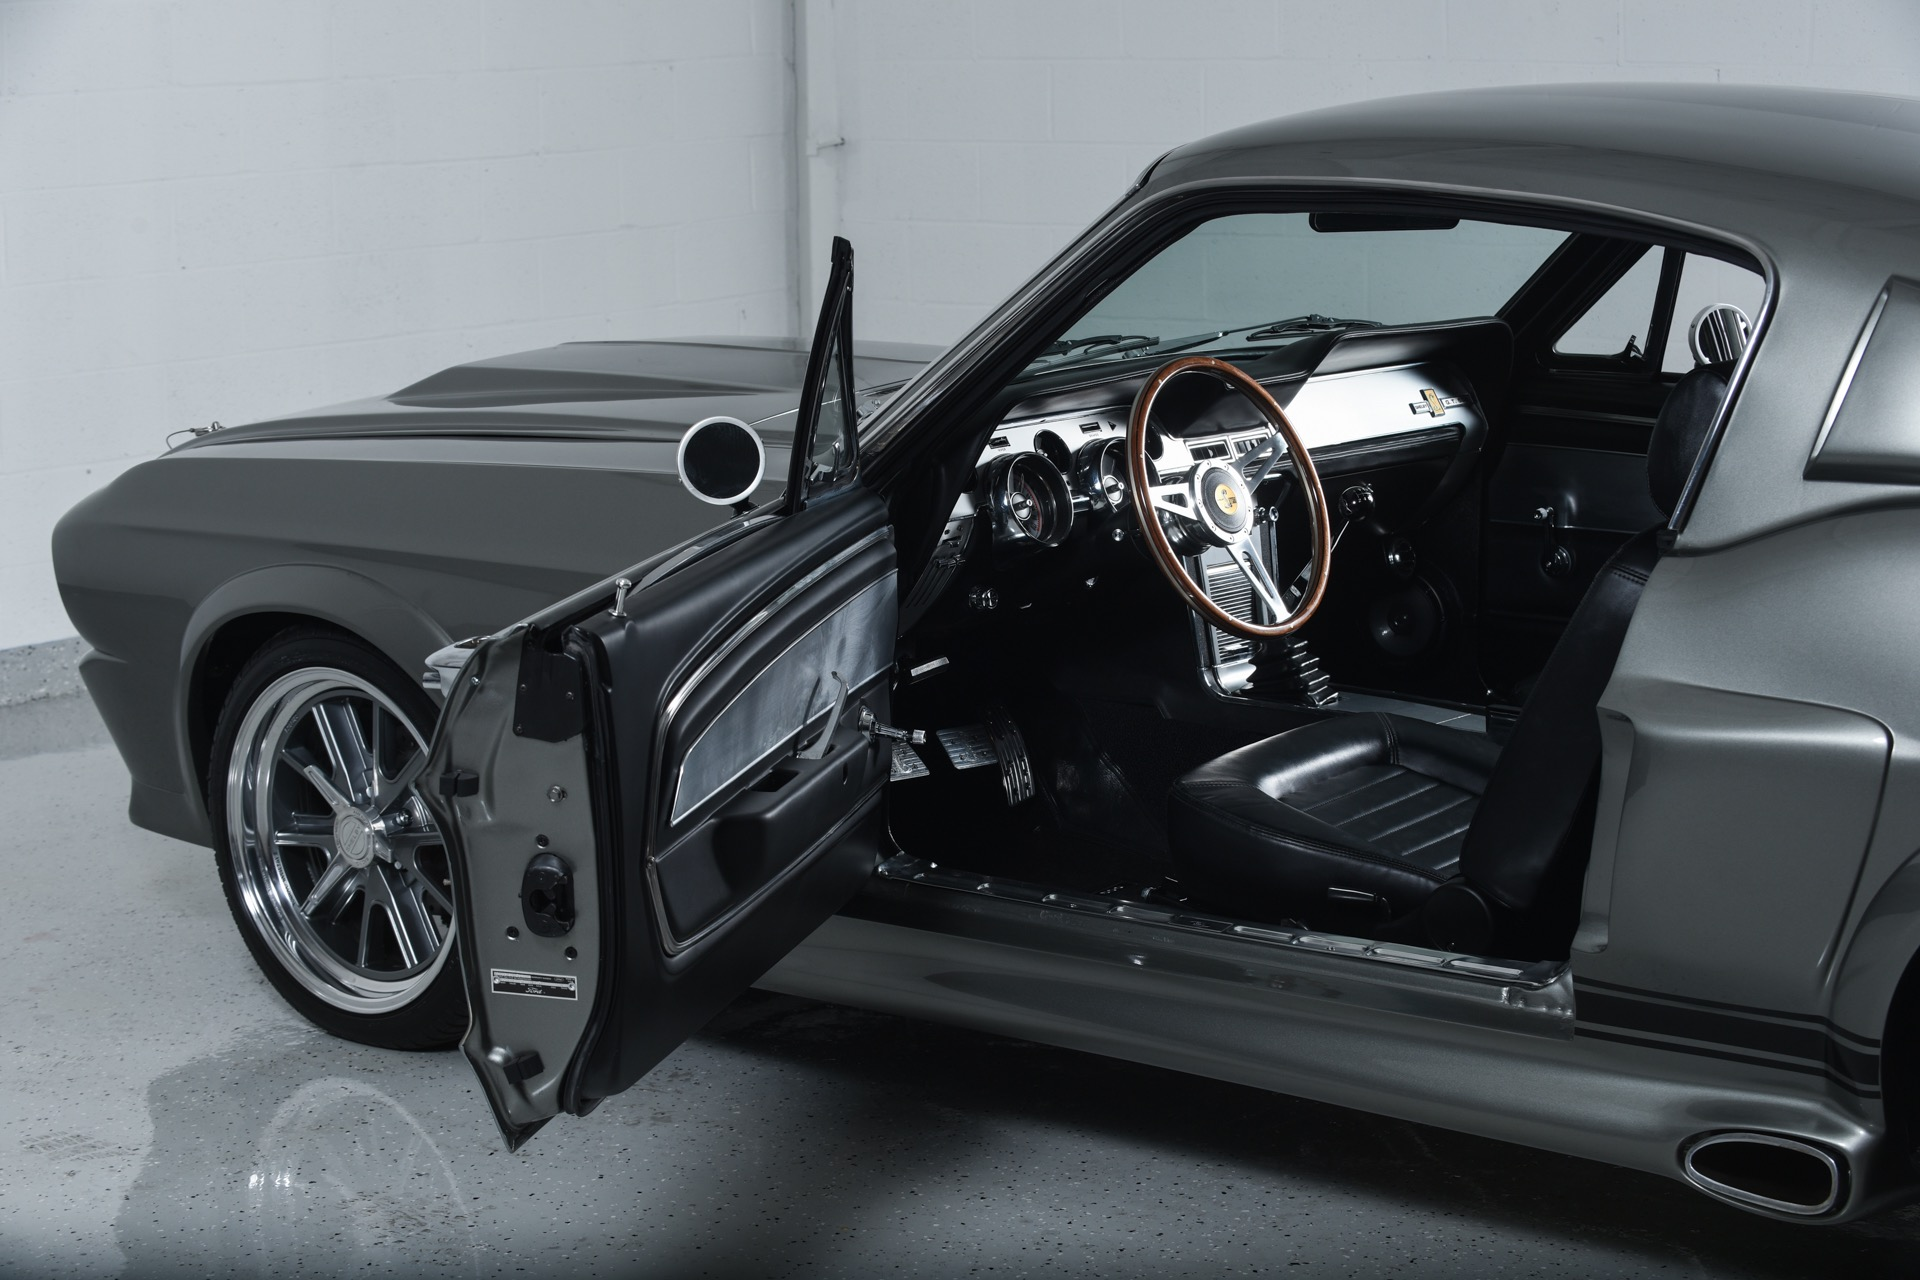 1967 Shelby Gt500 Eleanor >> 1967 Ford Mustang Fastback Eleanor Tribute - Exotic Car List